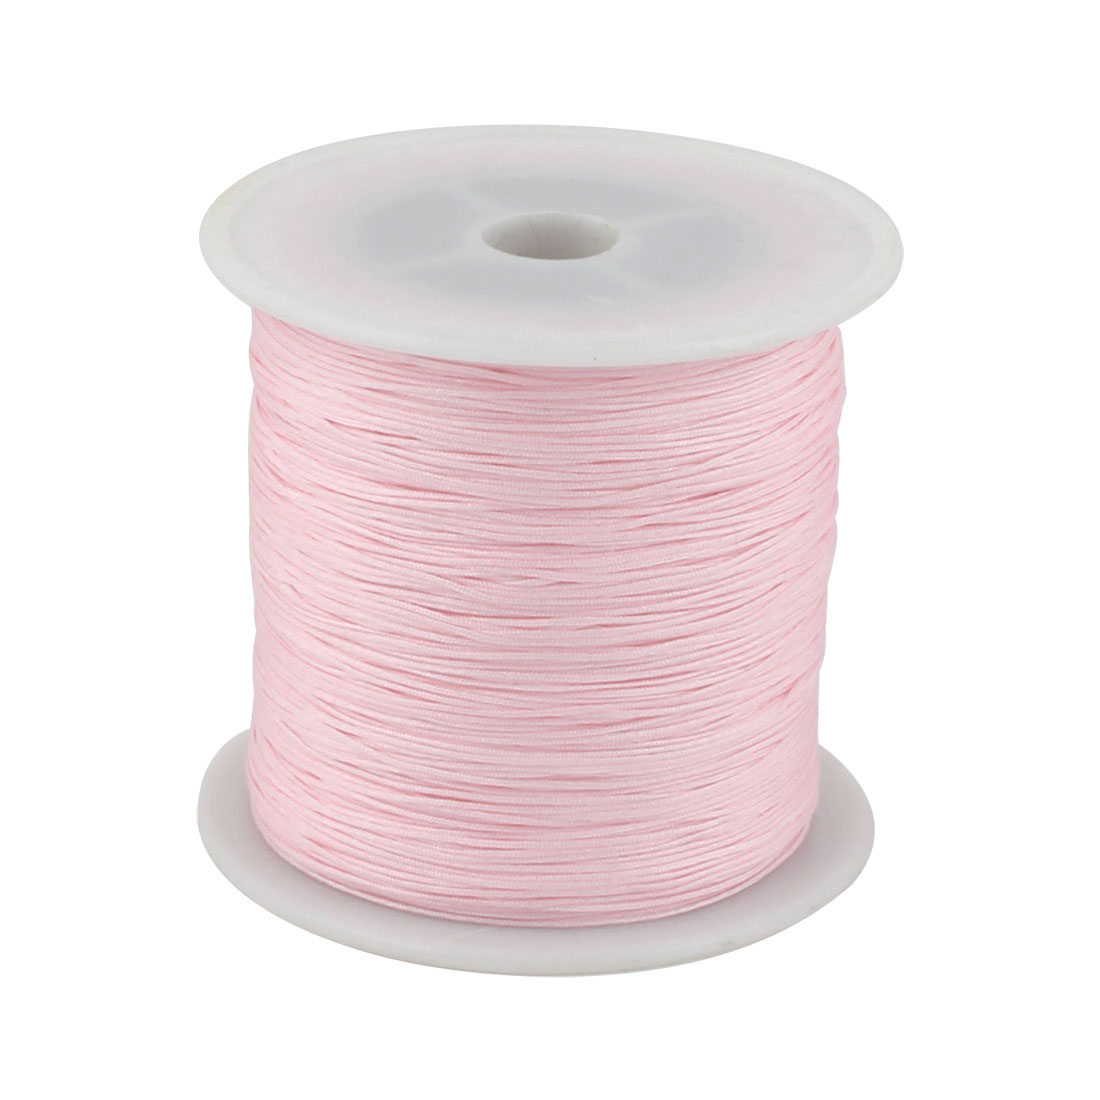 Nylon DIY Art Braided Beading Chinese Knot Cord String Rope Roll Pink 153 Yards